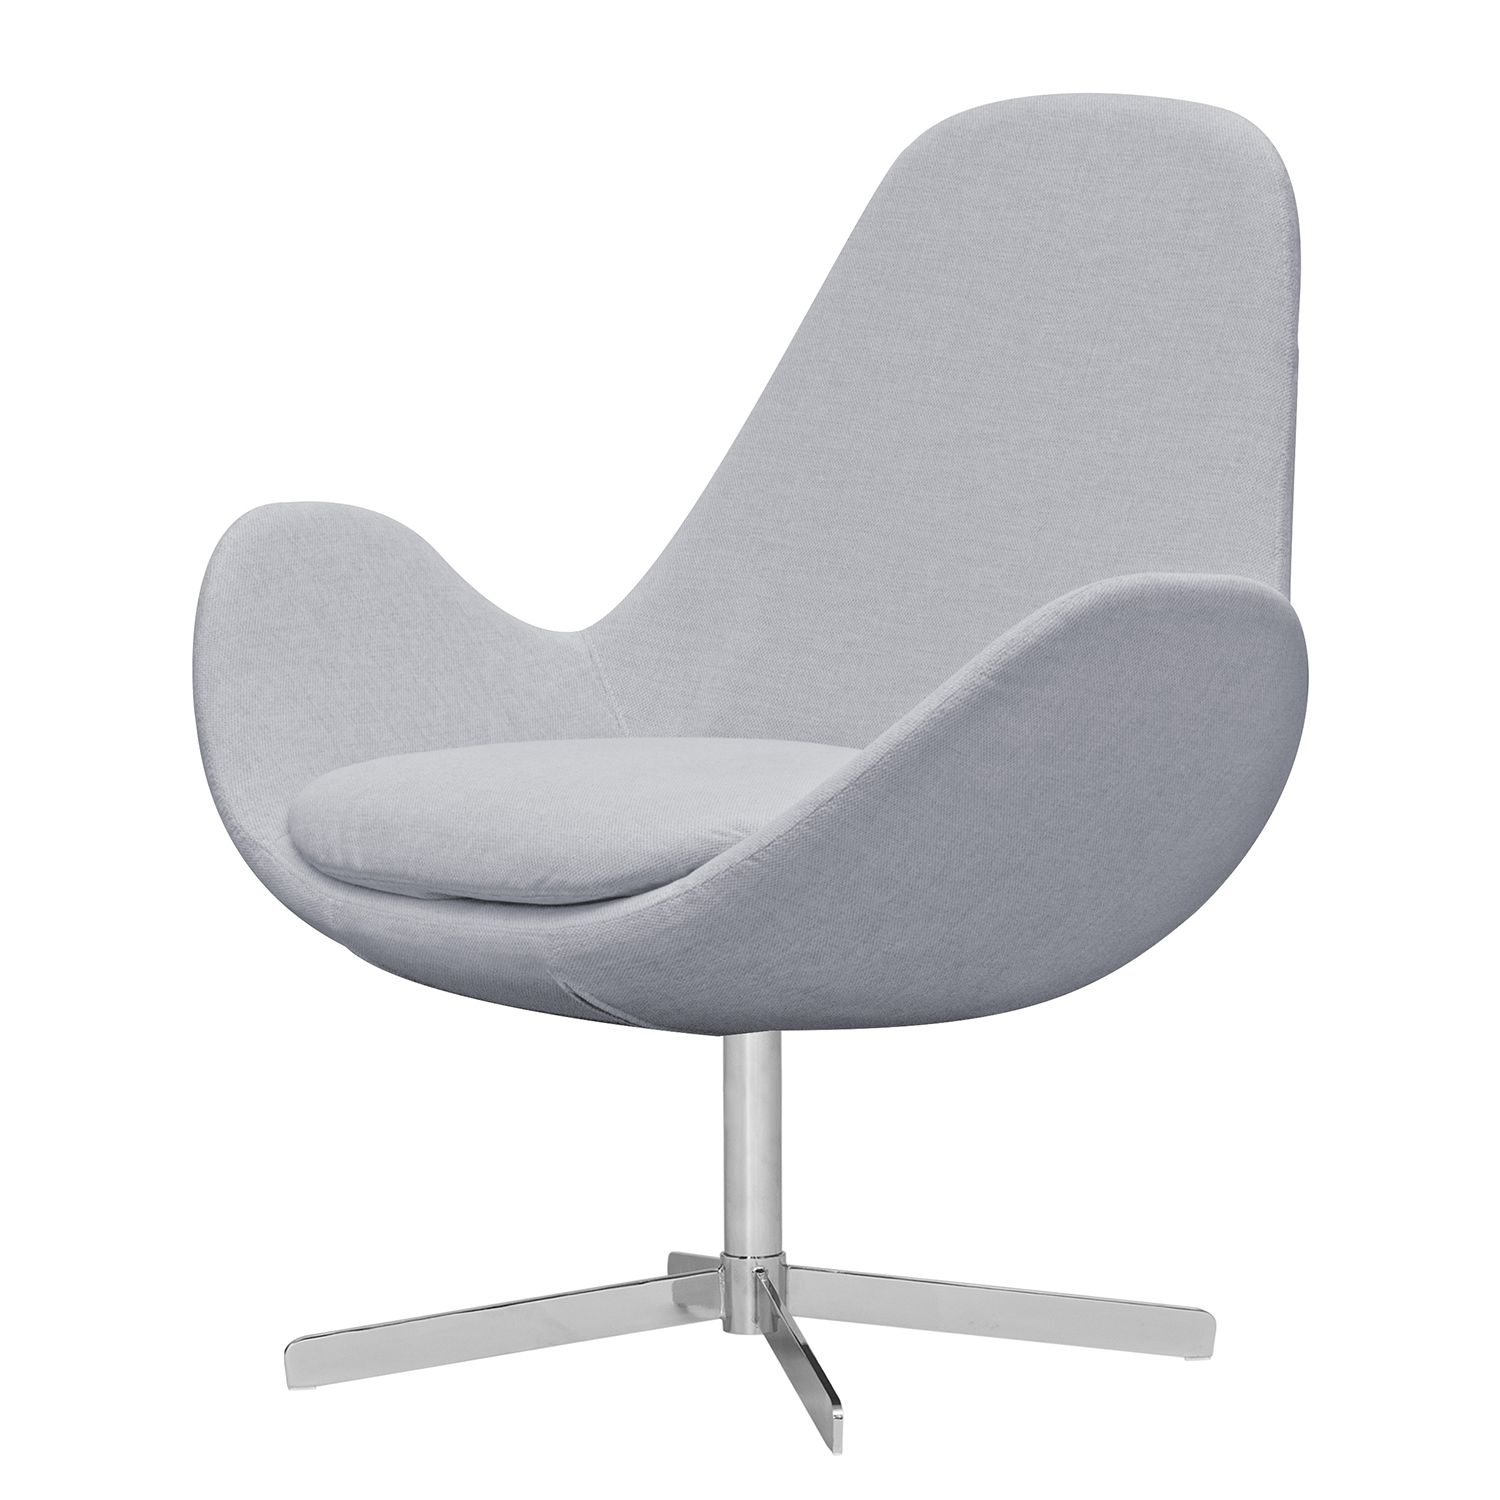 Milano Sessel Sessel Houston Ii Webstoff Chrom Stoff Milan Hellgrau